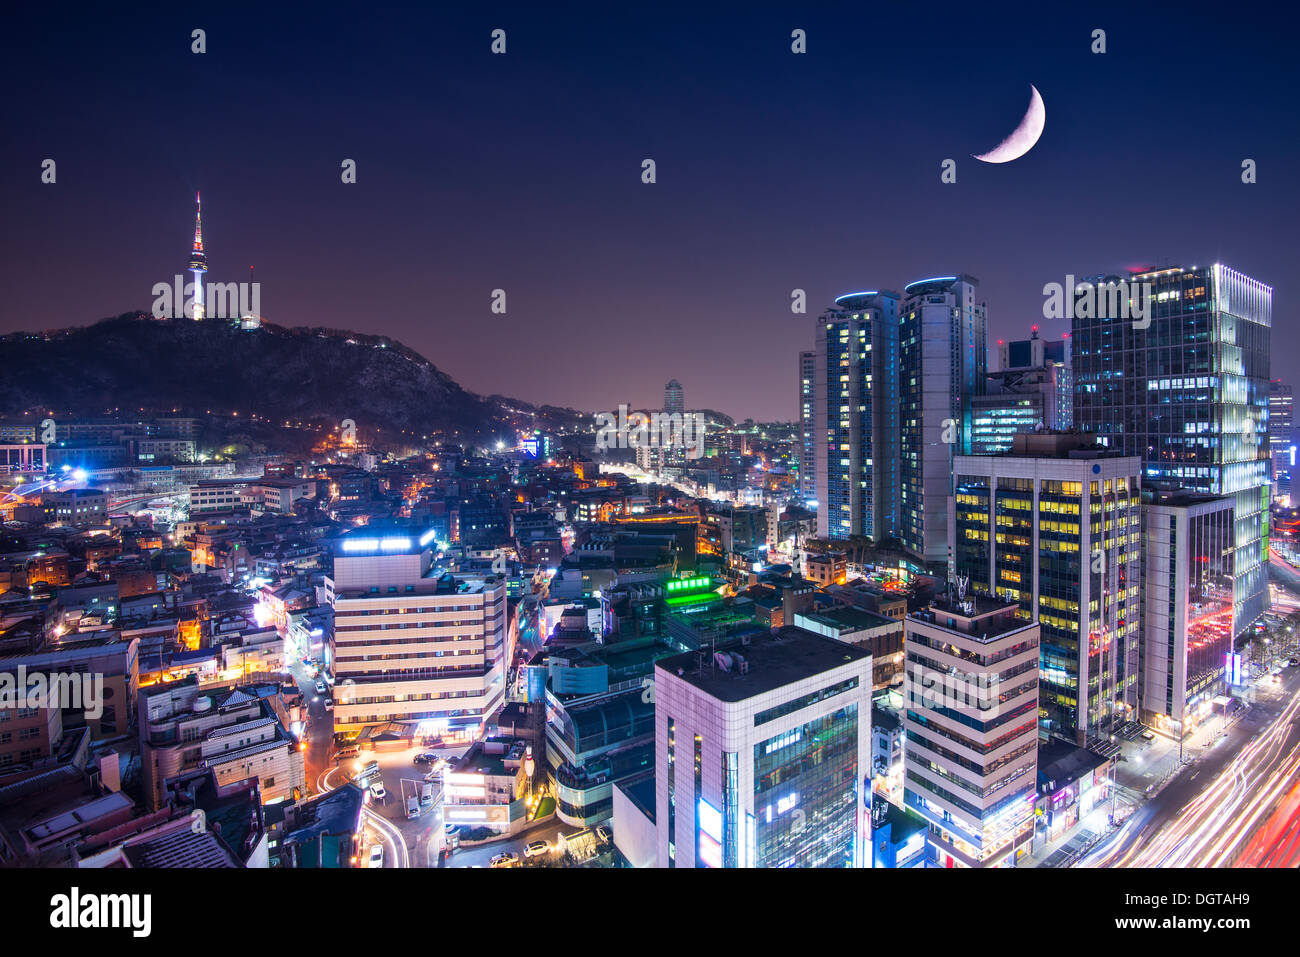 Seoul, South Korea with Namsan Mountain. - Stock Image